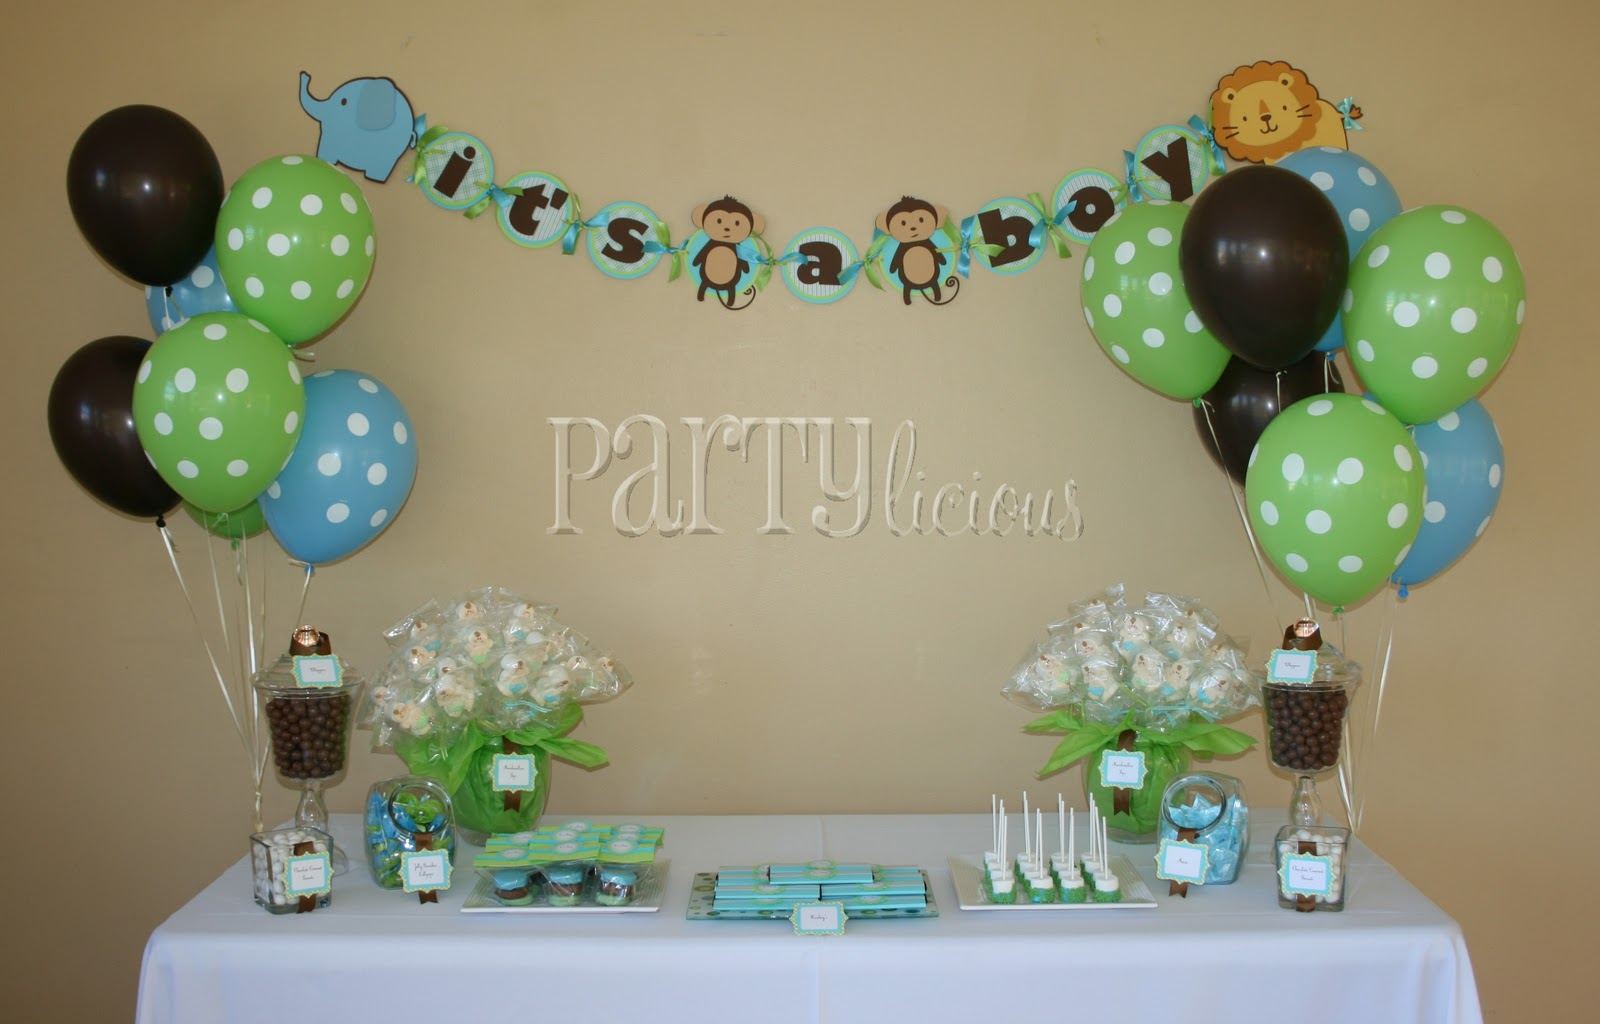 Partylicious Events PR: {Partylicious} and Safari Baby Shower